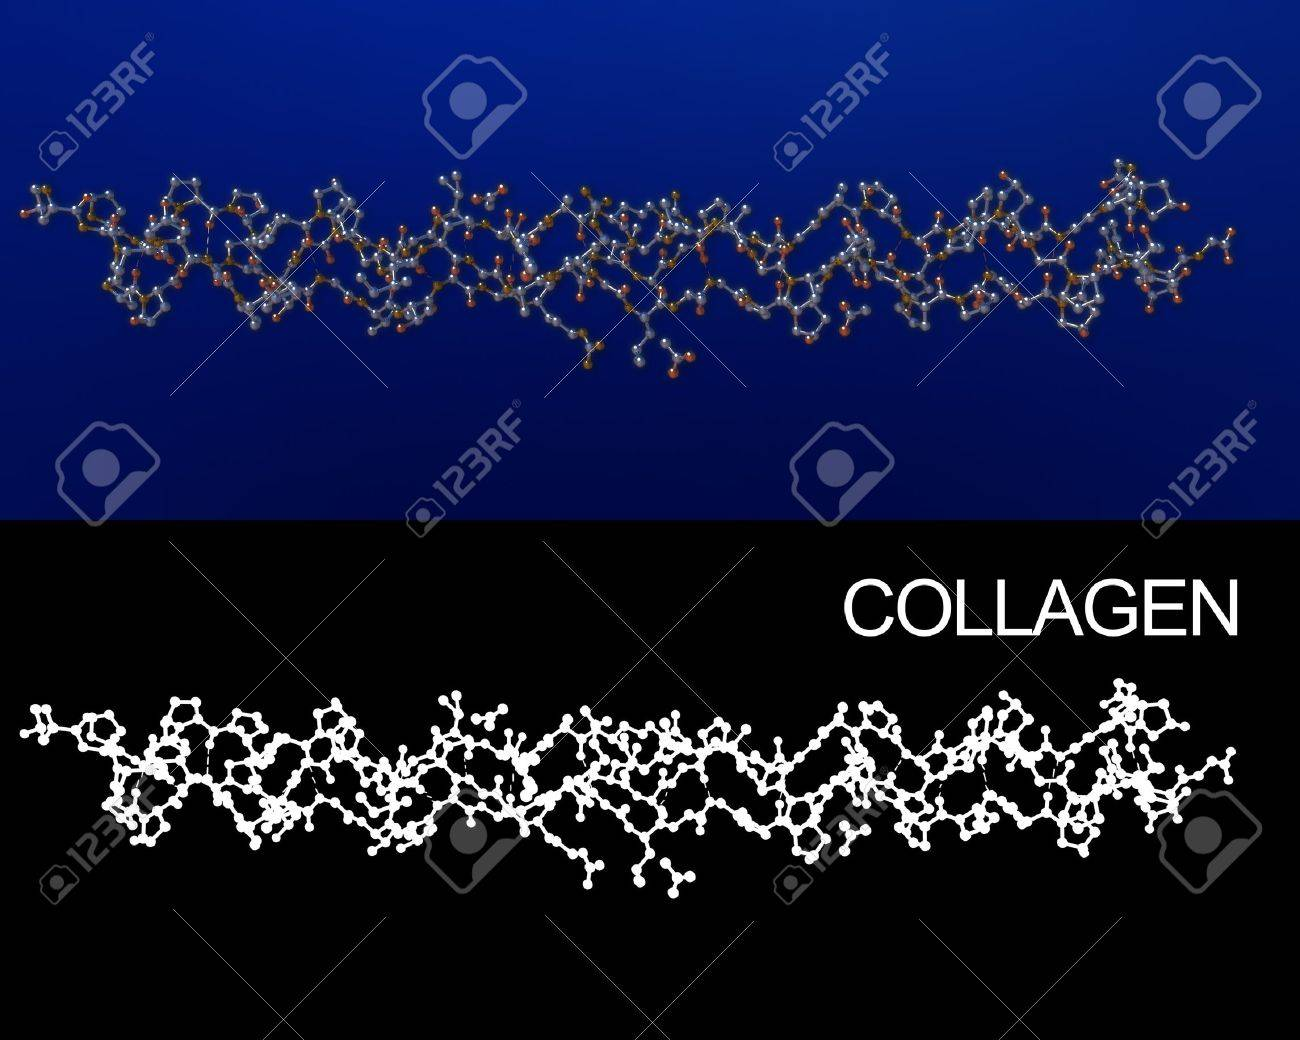 Collagen crystal structure molecule 3D rendering. Alpha channel added for easy extraction. Exact representation of collagen 1BKVA0 from protein data bank. - 8966916